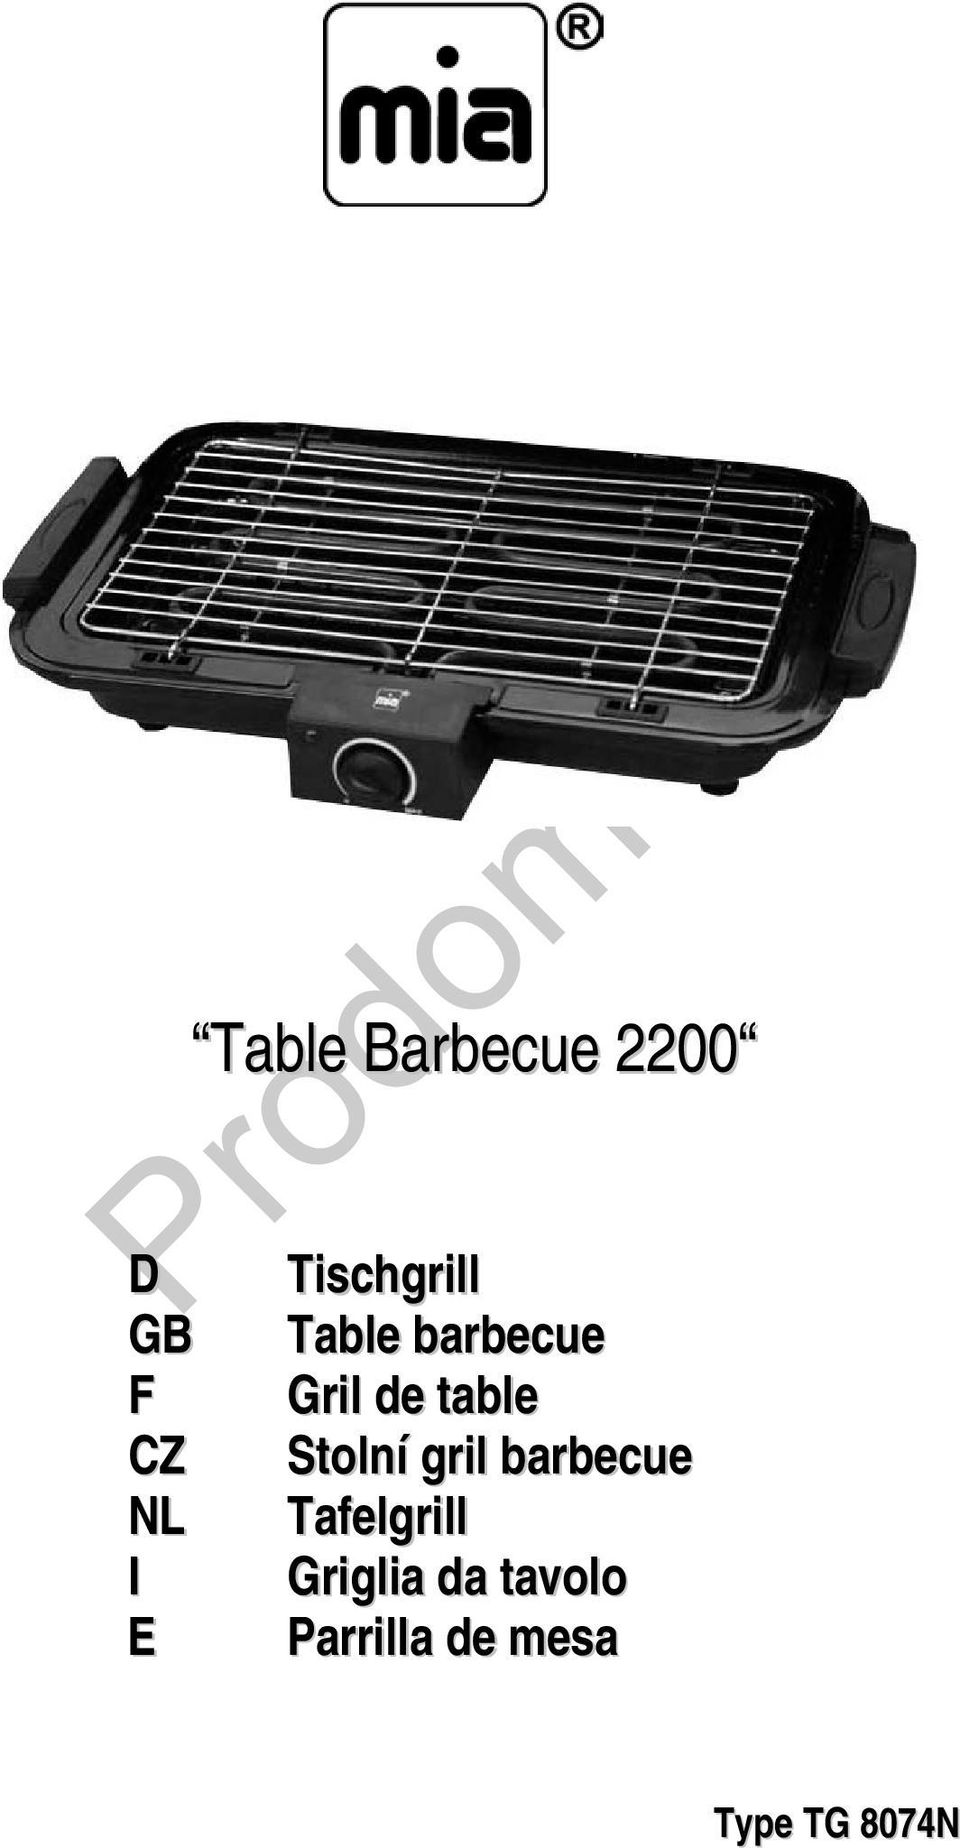 Stolní gril barbecue NL Tafelgrill I